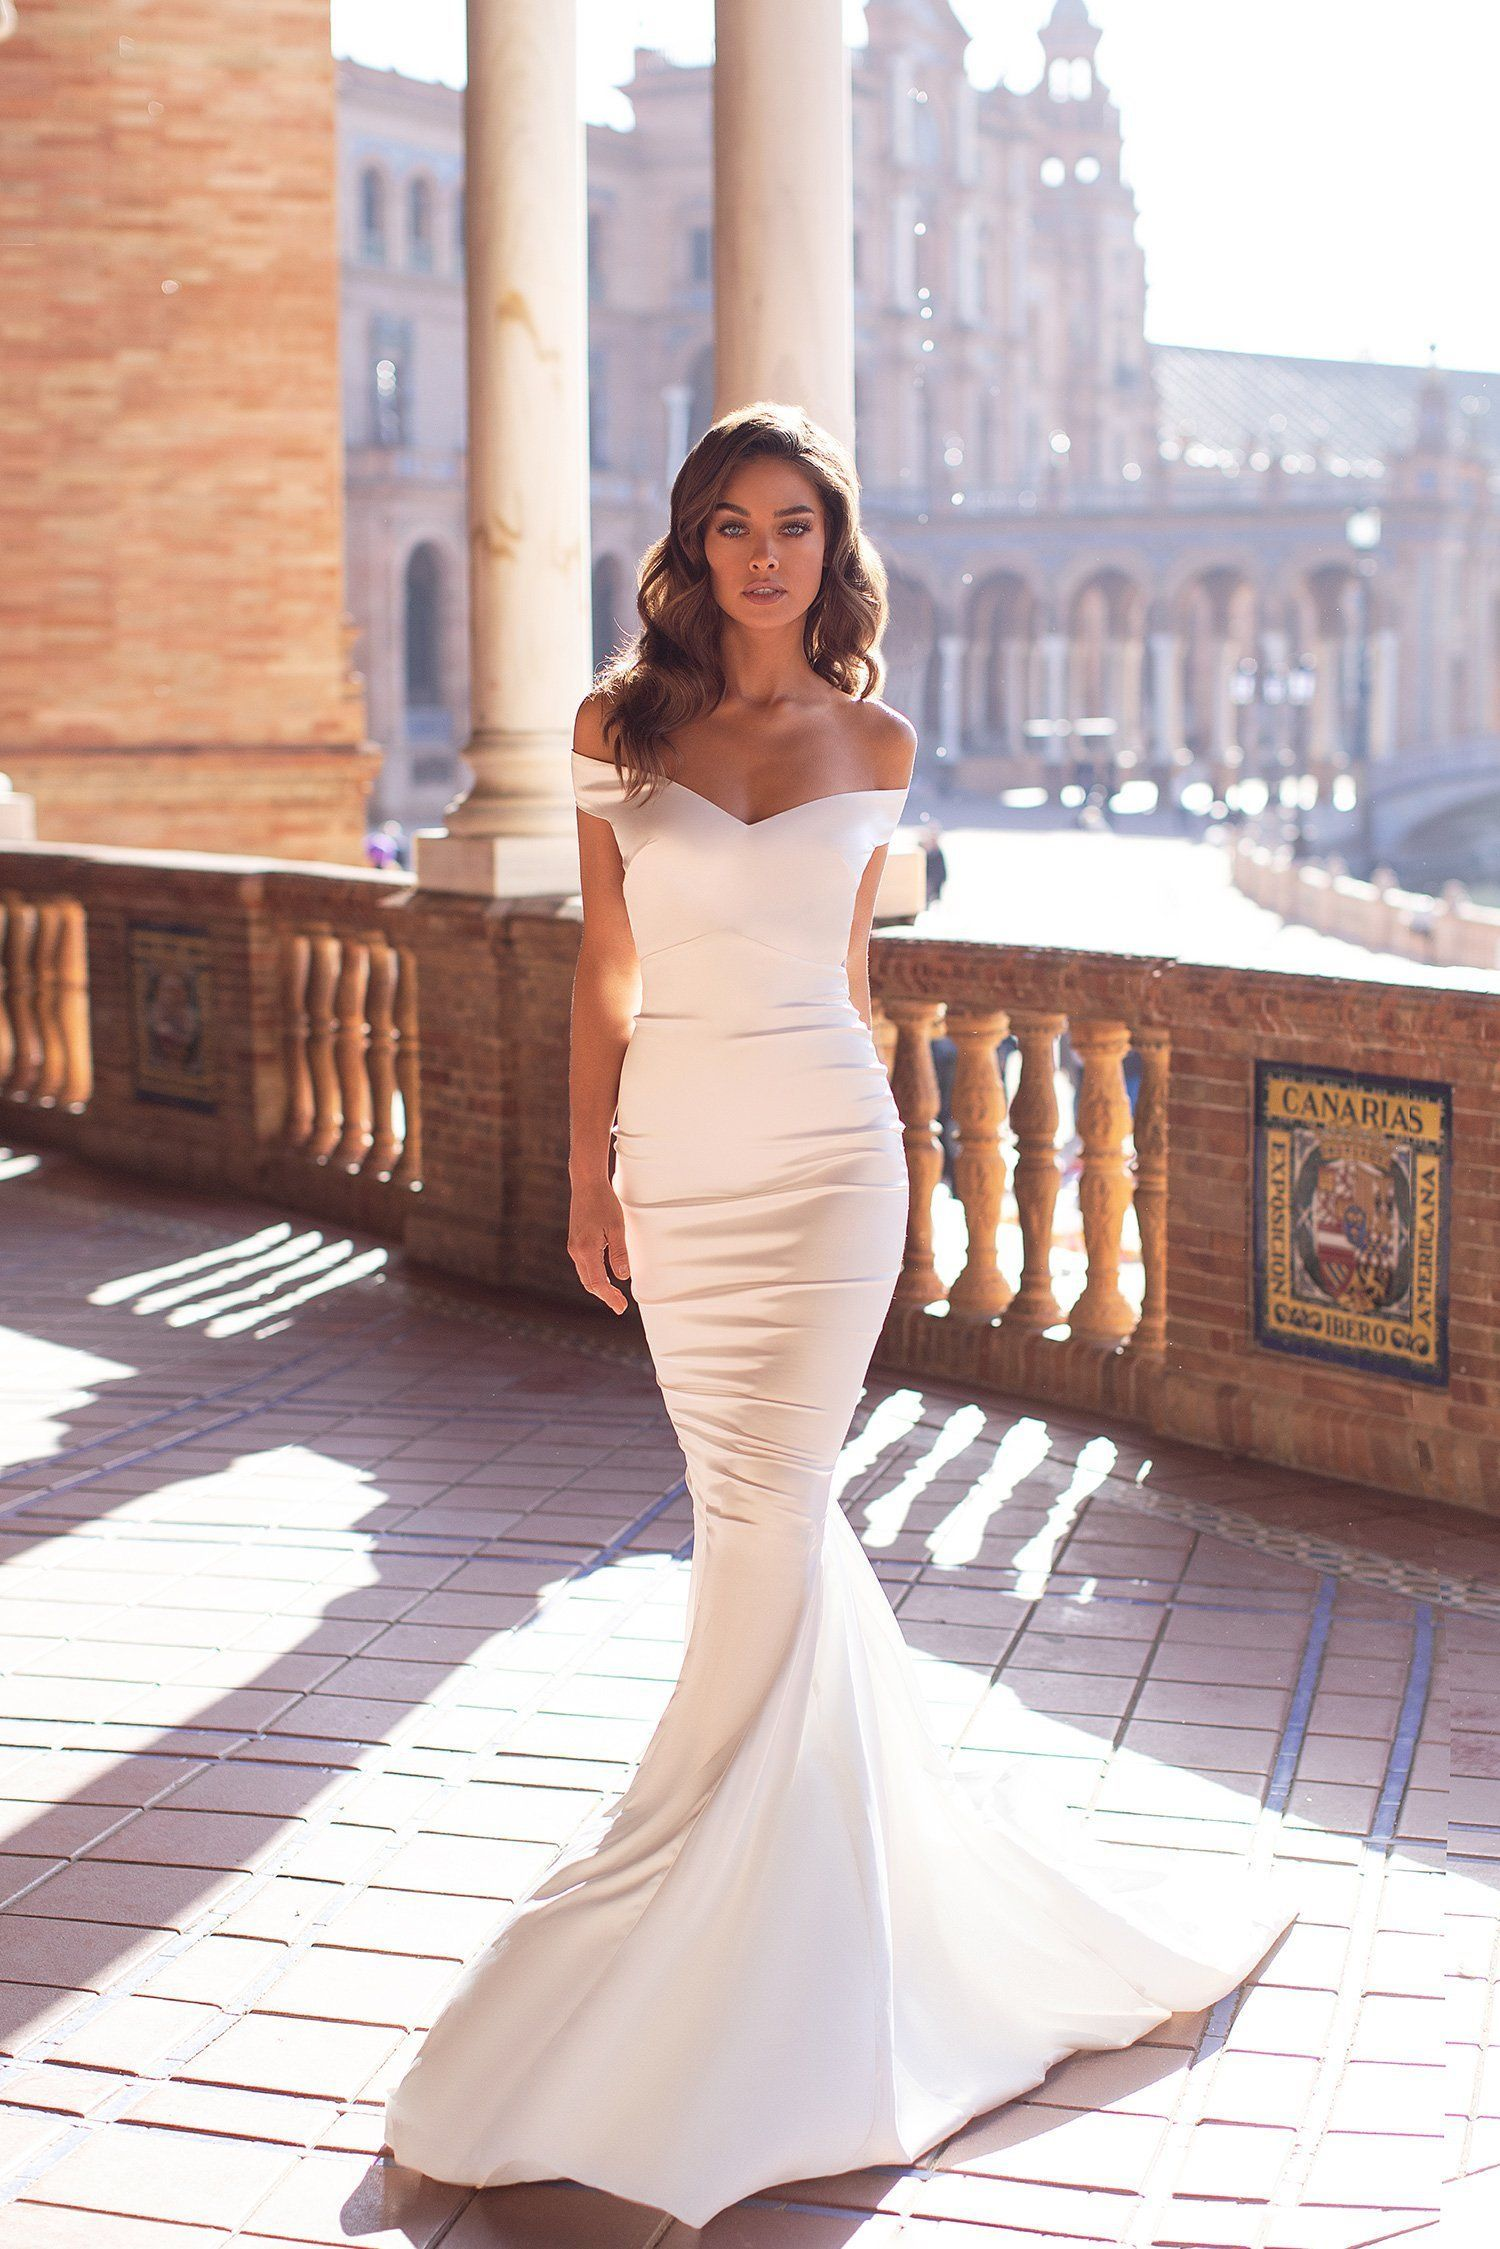 Wedding Dress Tight Dulce White Off Shoulder Satin Gown With Open Back Amp Mermaid Train Tight Wedding Dress Wedding Dresses Lace Silk Wedding Dress [ 2249 x 1500 Pixel ]